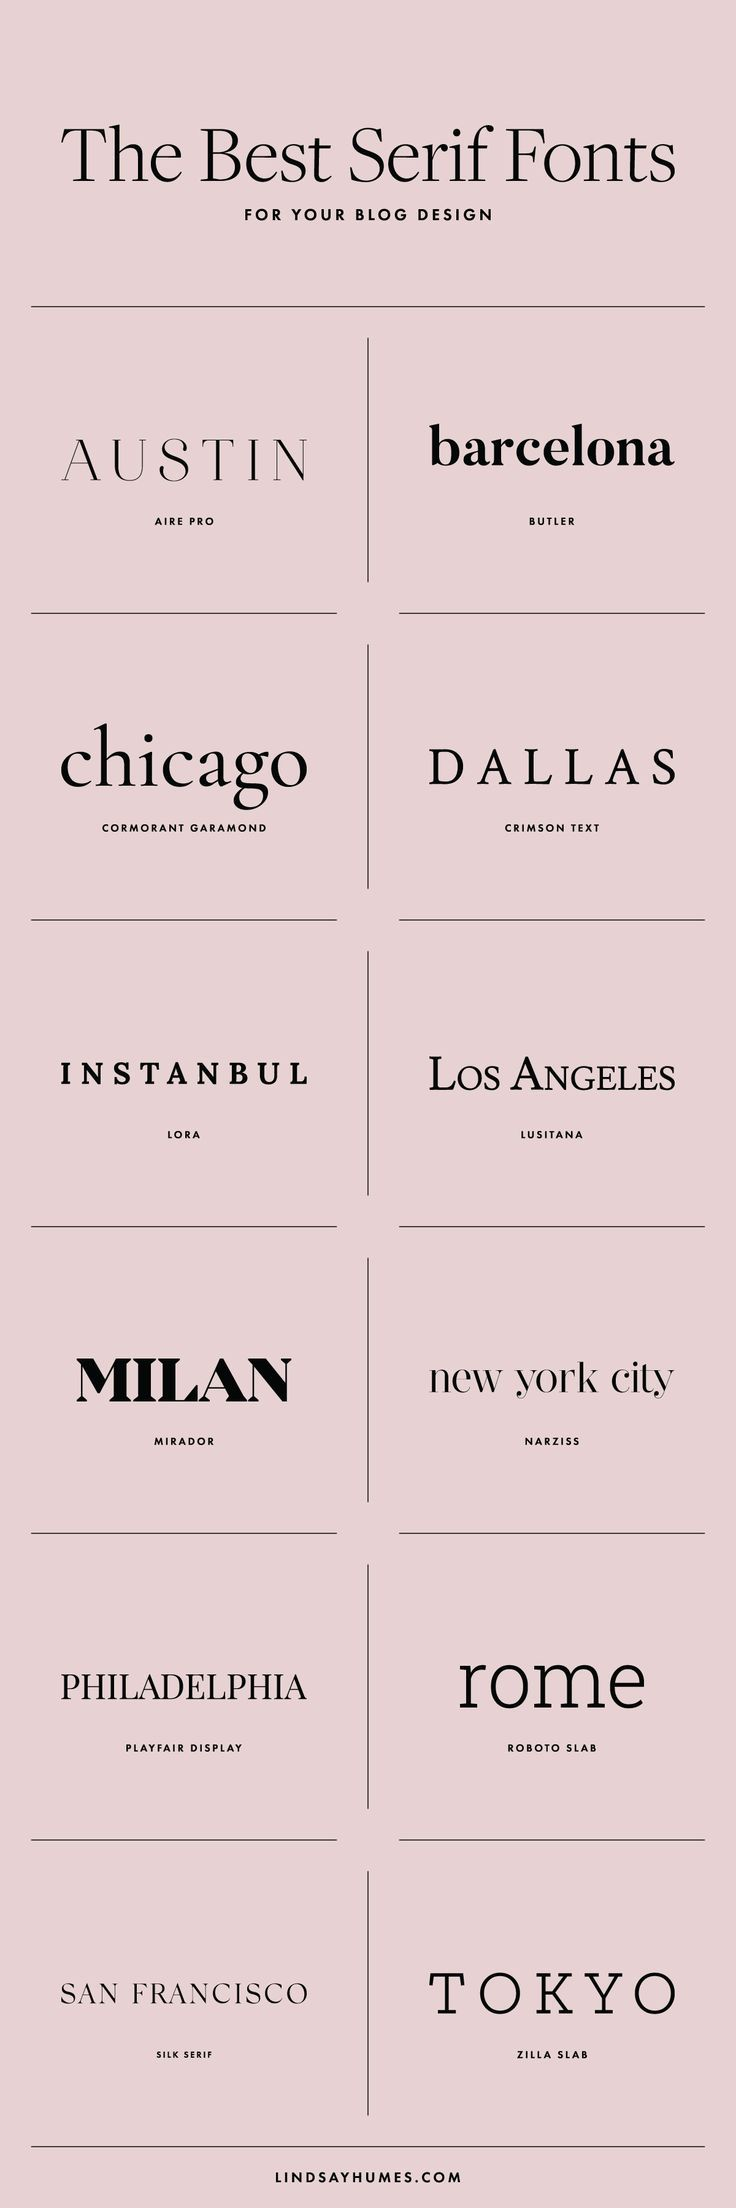 The Best Serif Fonts for Blog Designs #branding